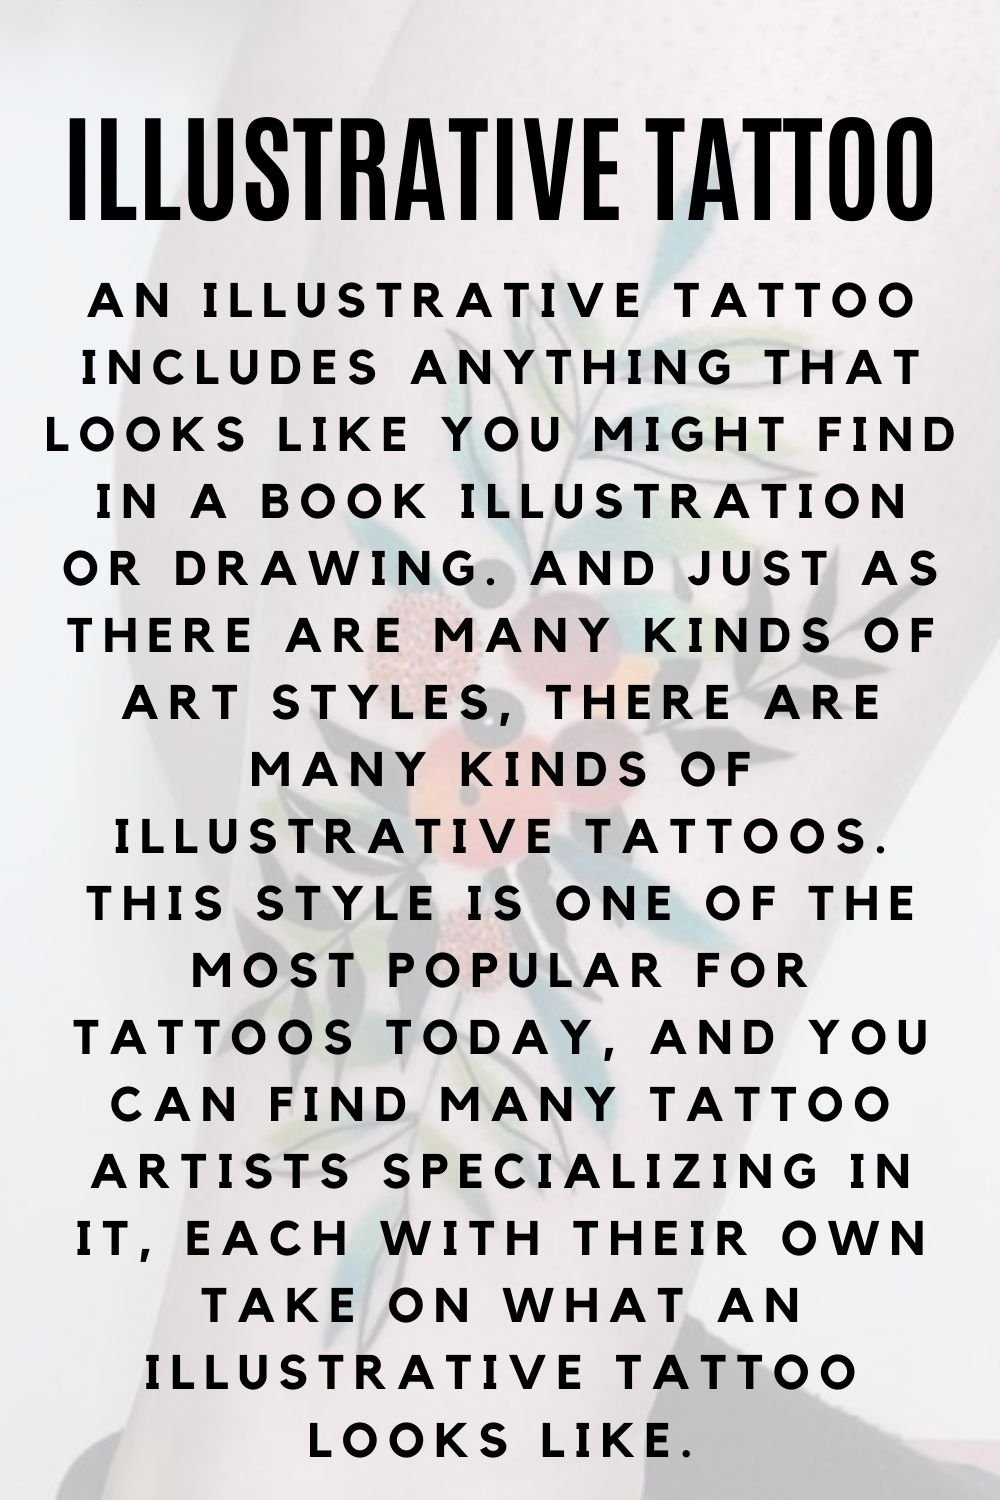 What is an illustrative tattoo